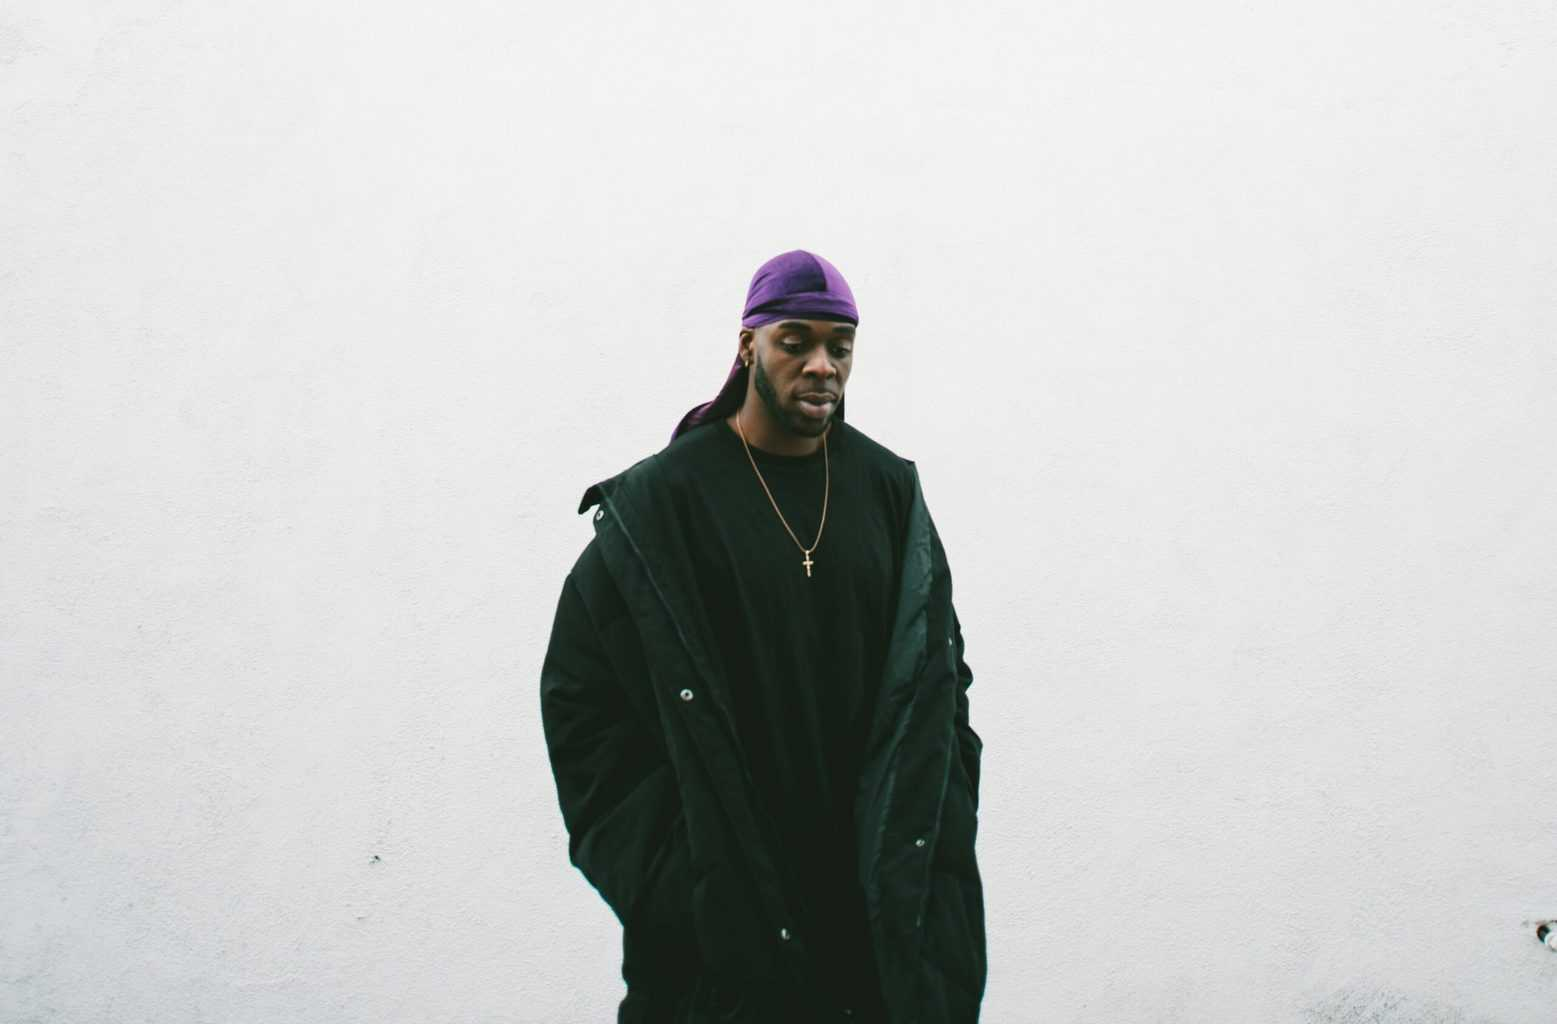 A man wearing black clothes with a purple durag